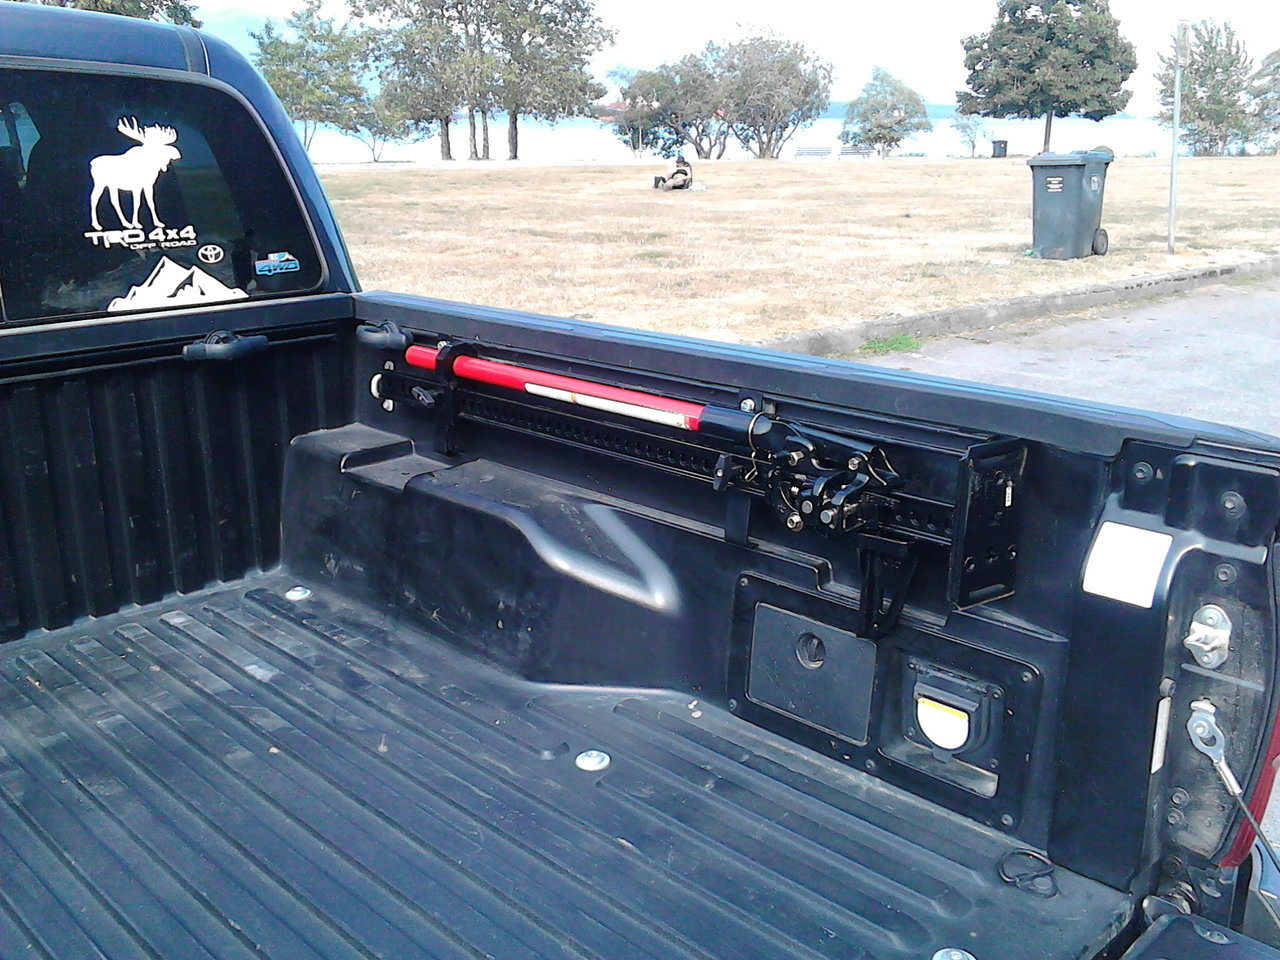 Axe and shovel mount In-bed mounting brackets Toyota Tacoma or similar